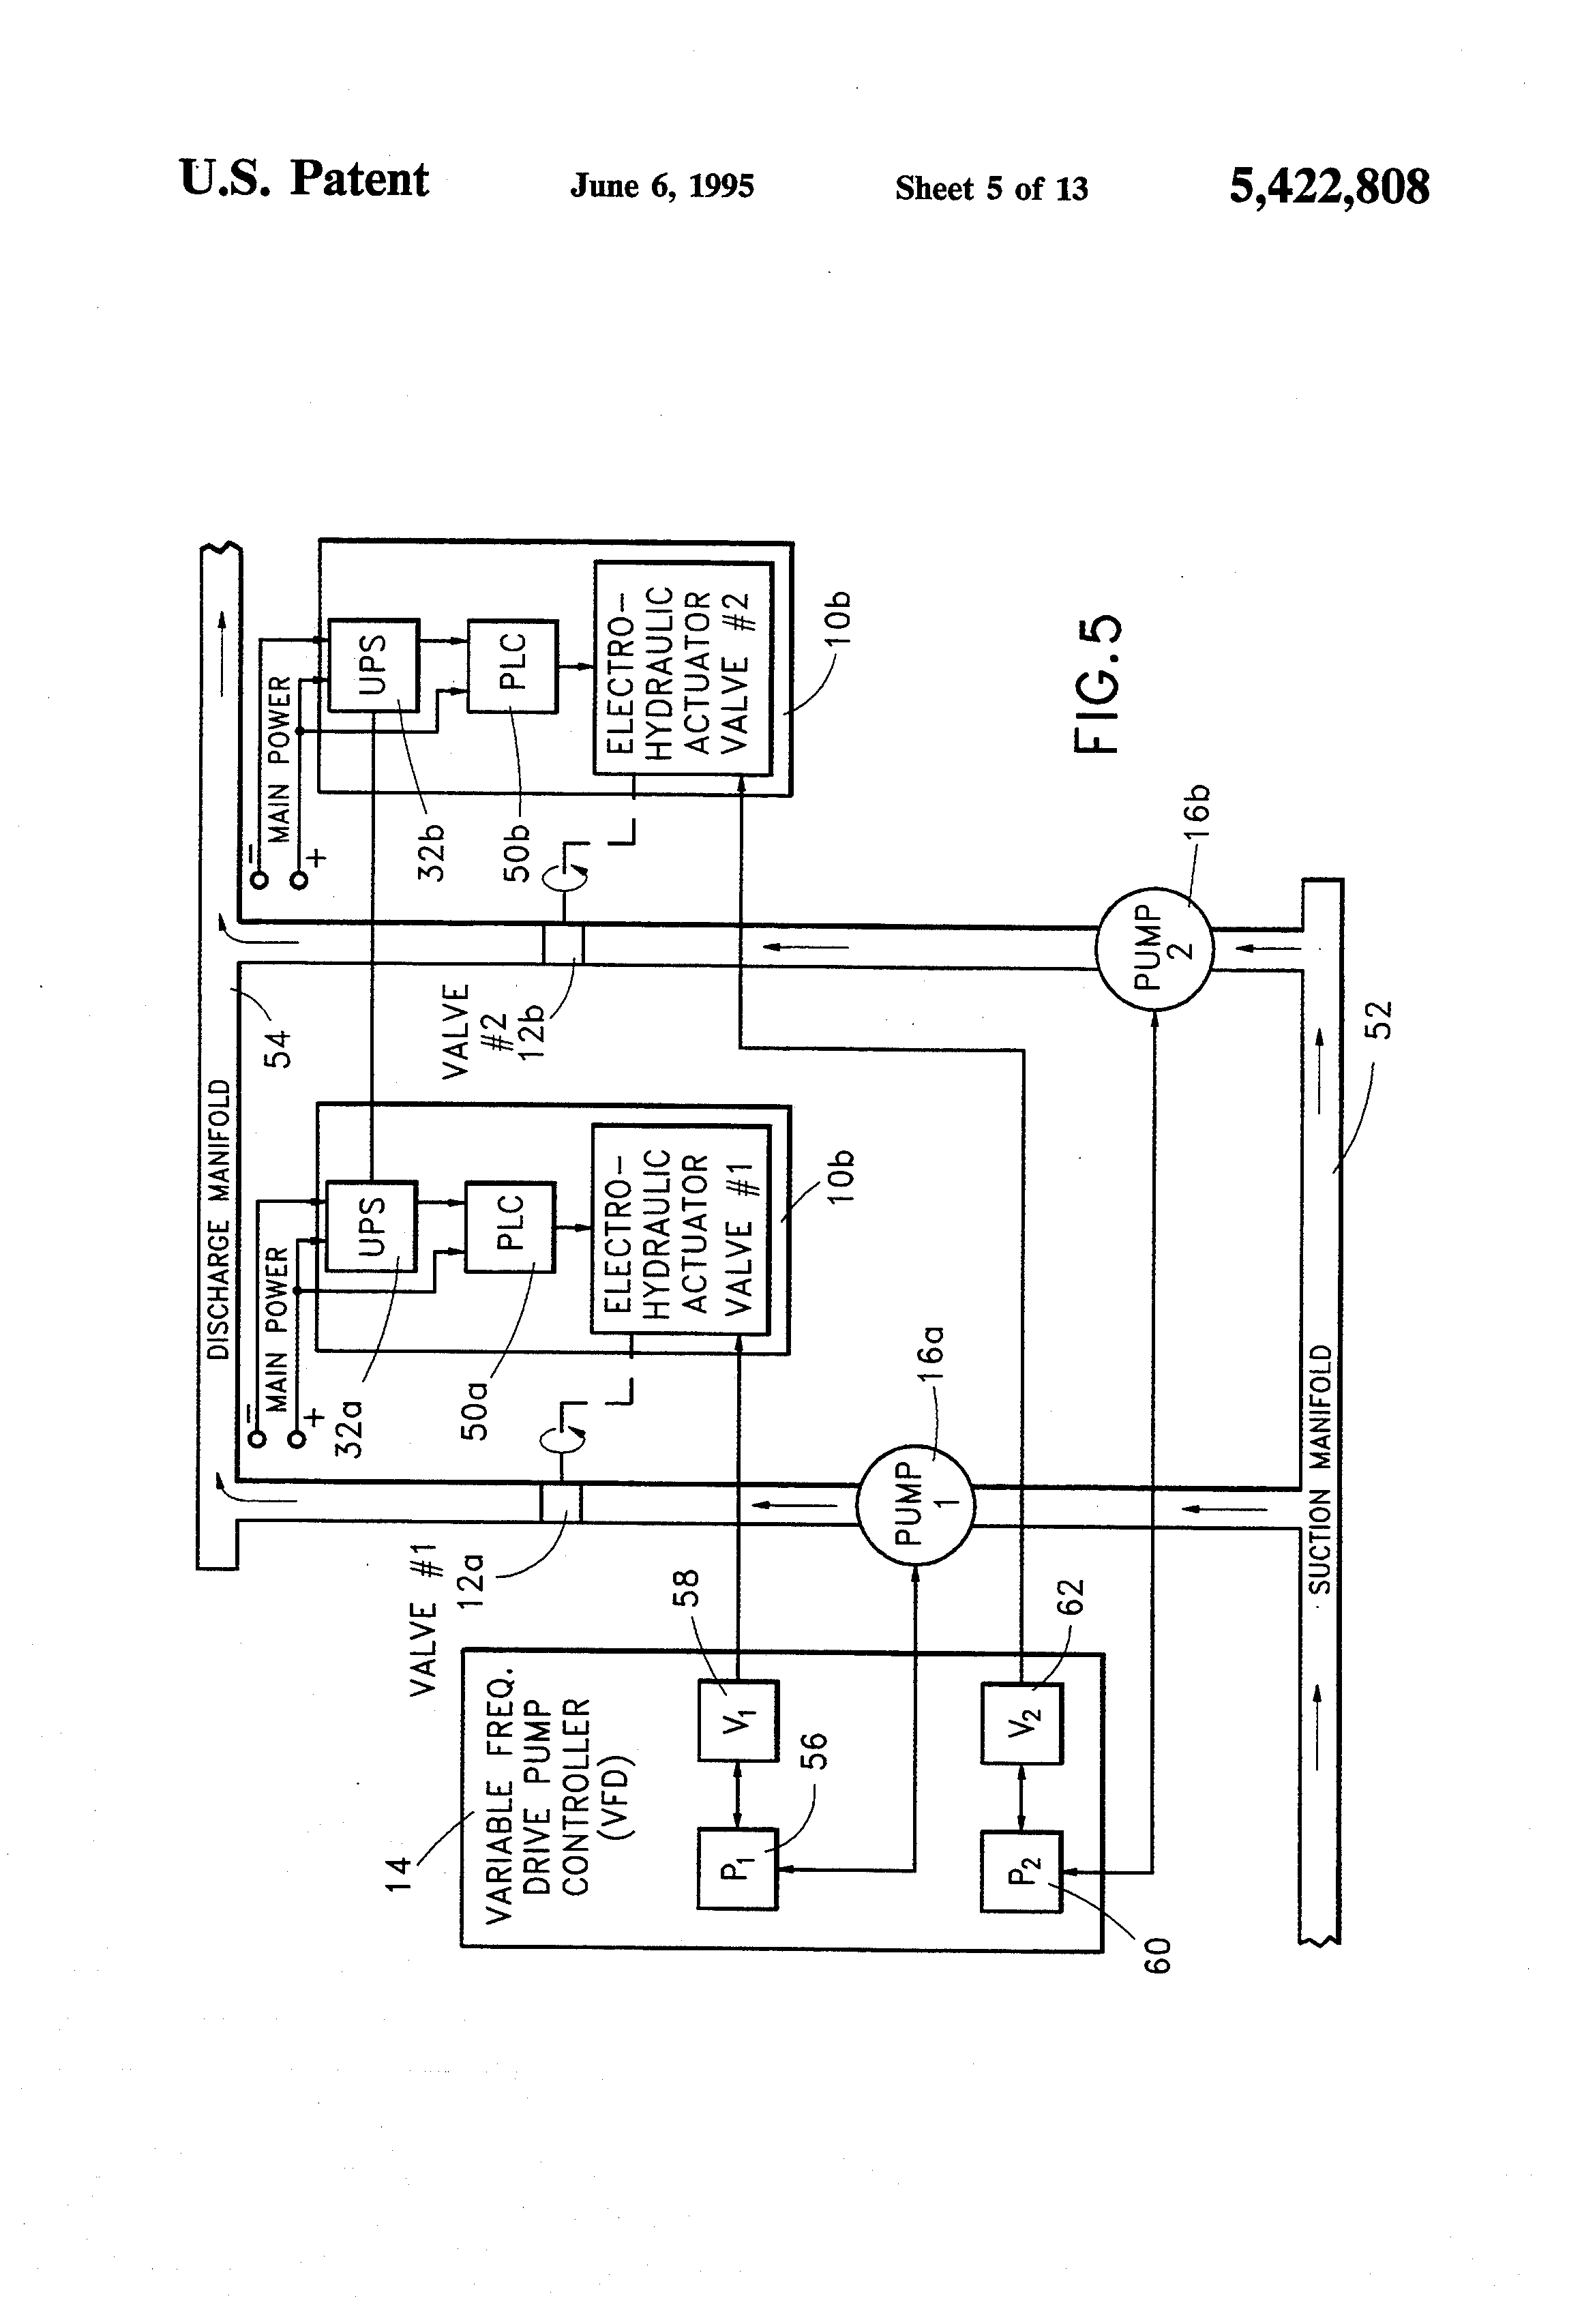 US5422808 5 mov wiring diagram swf wiring diagram \u2022 wiring diagrams j squared co rotork actuator wiring diagrams at bayanpartner.co